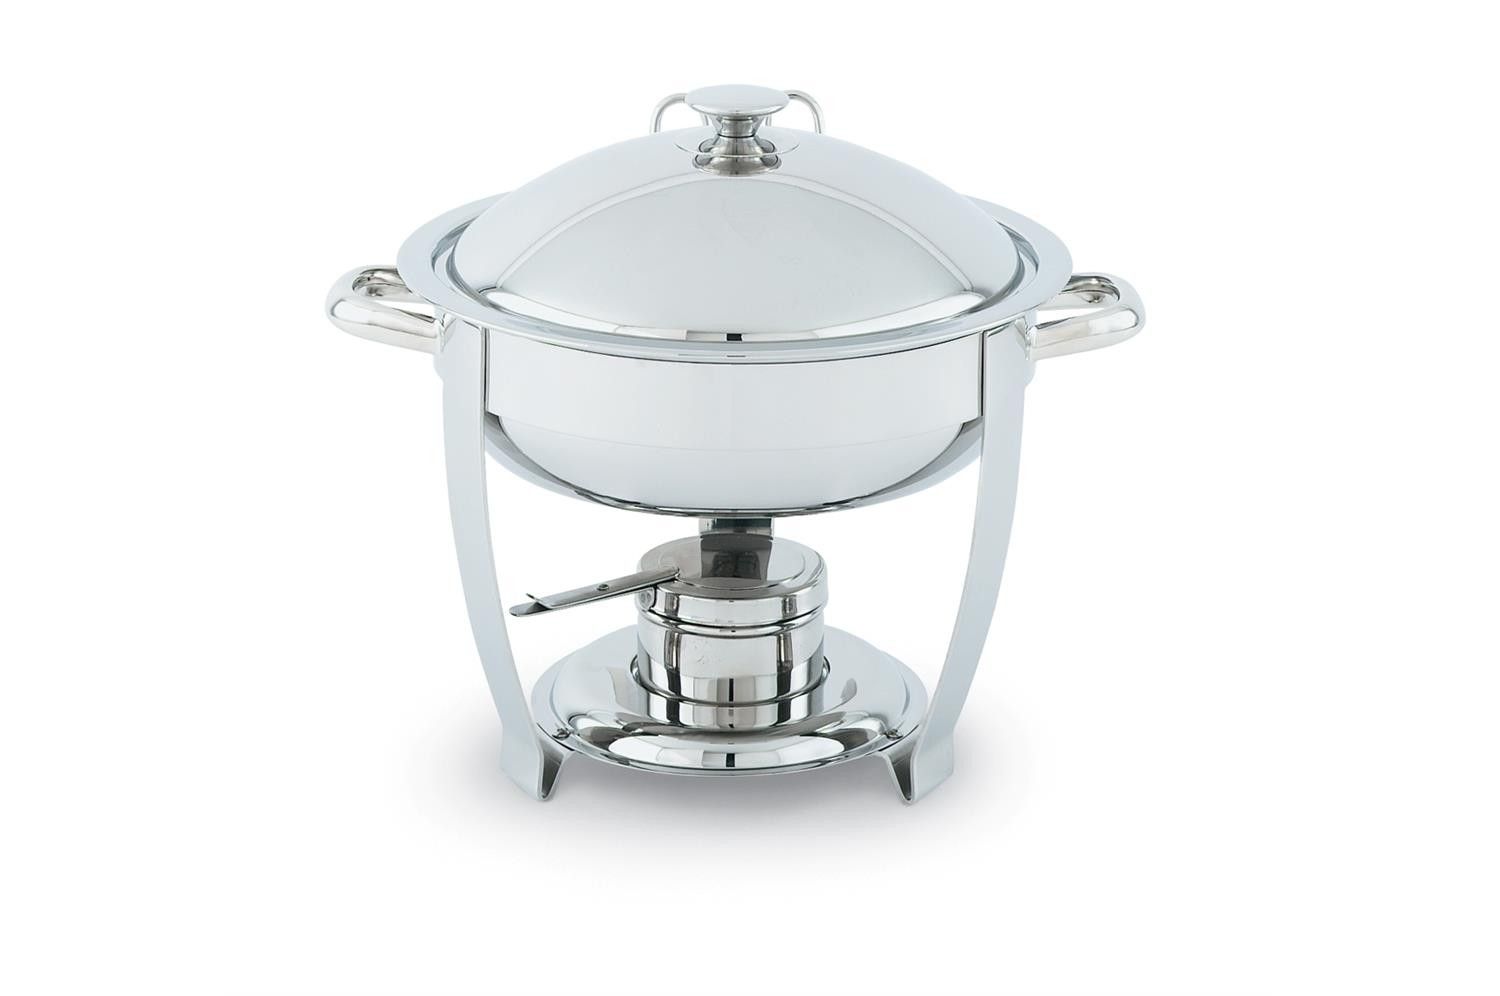 Vollrath 46502 Orion Large Lift-Off Round Chafer 6 Qt.